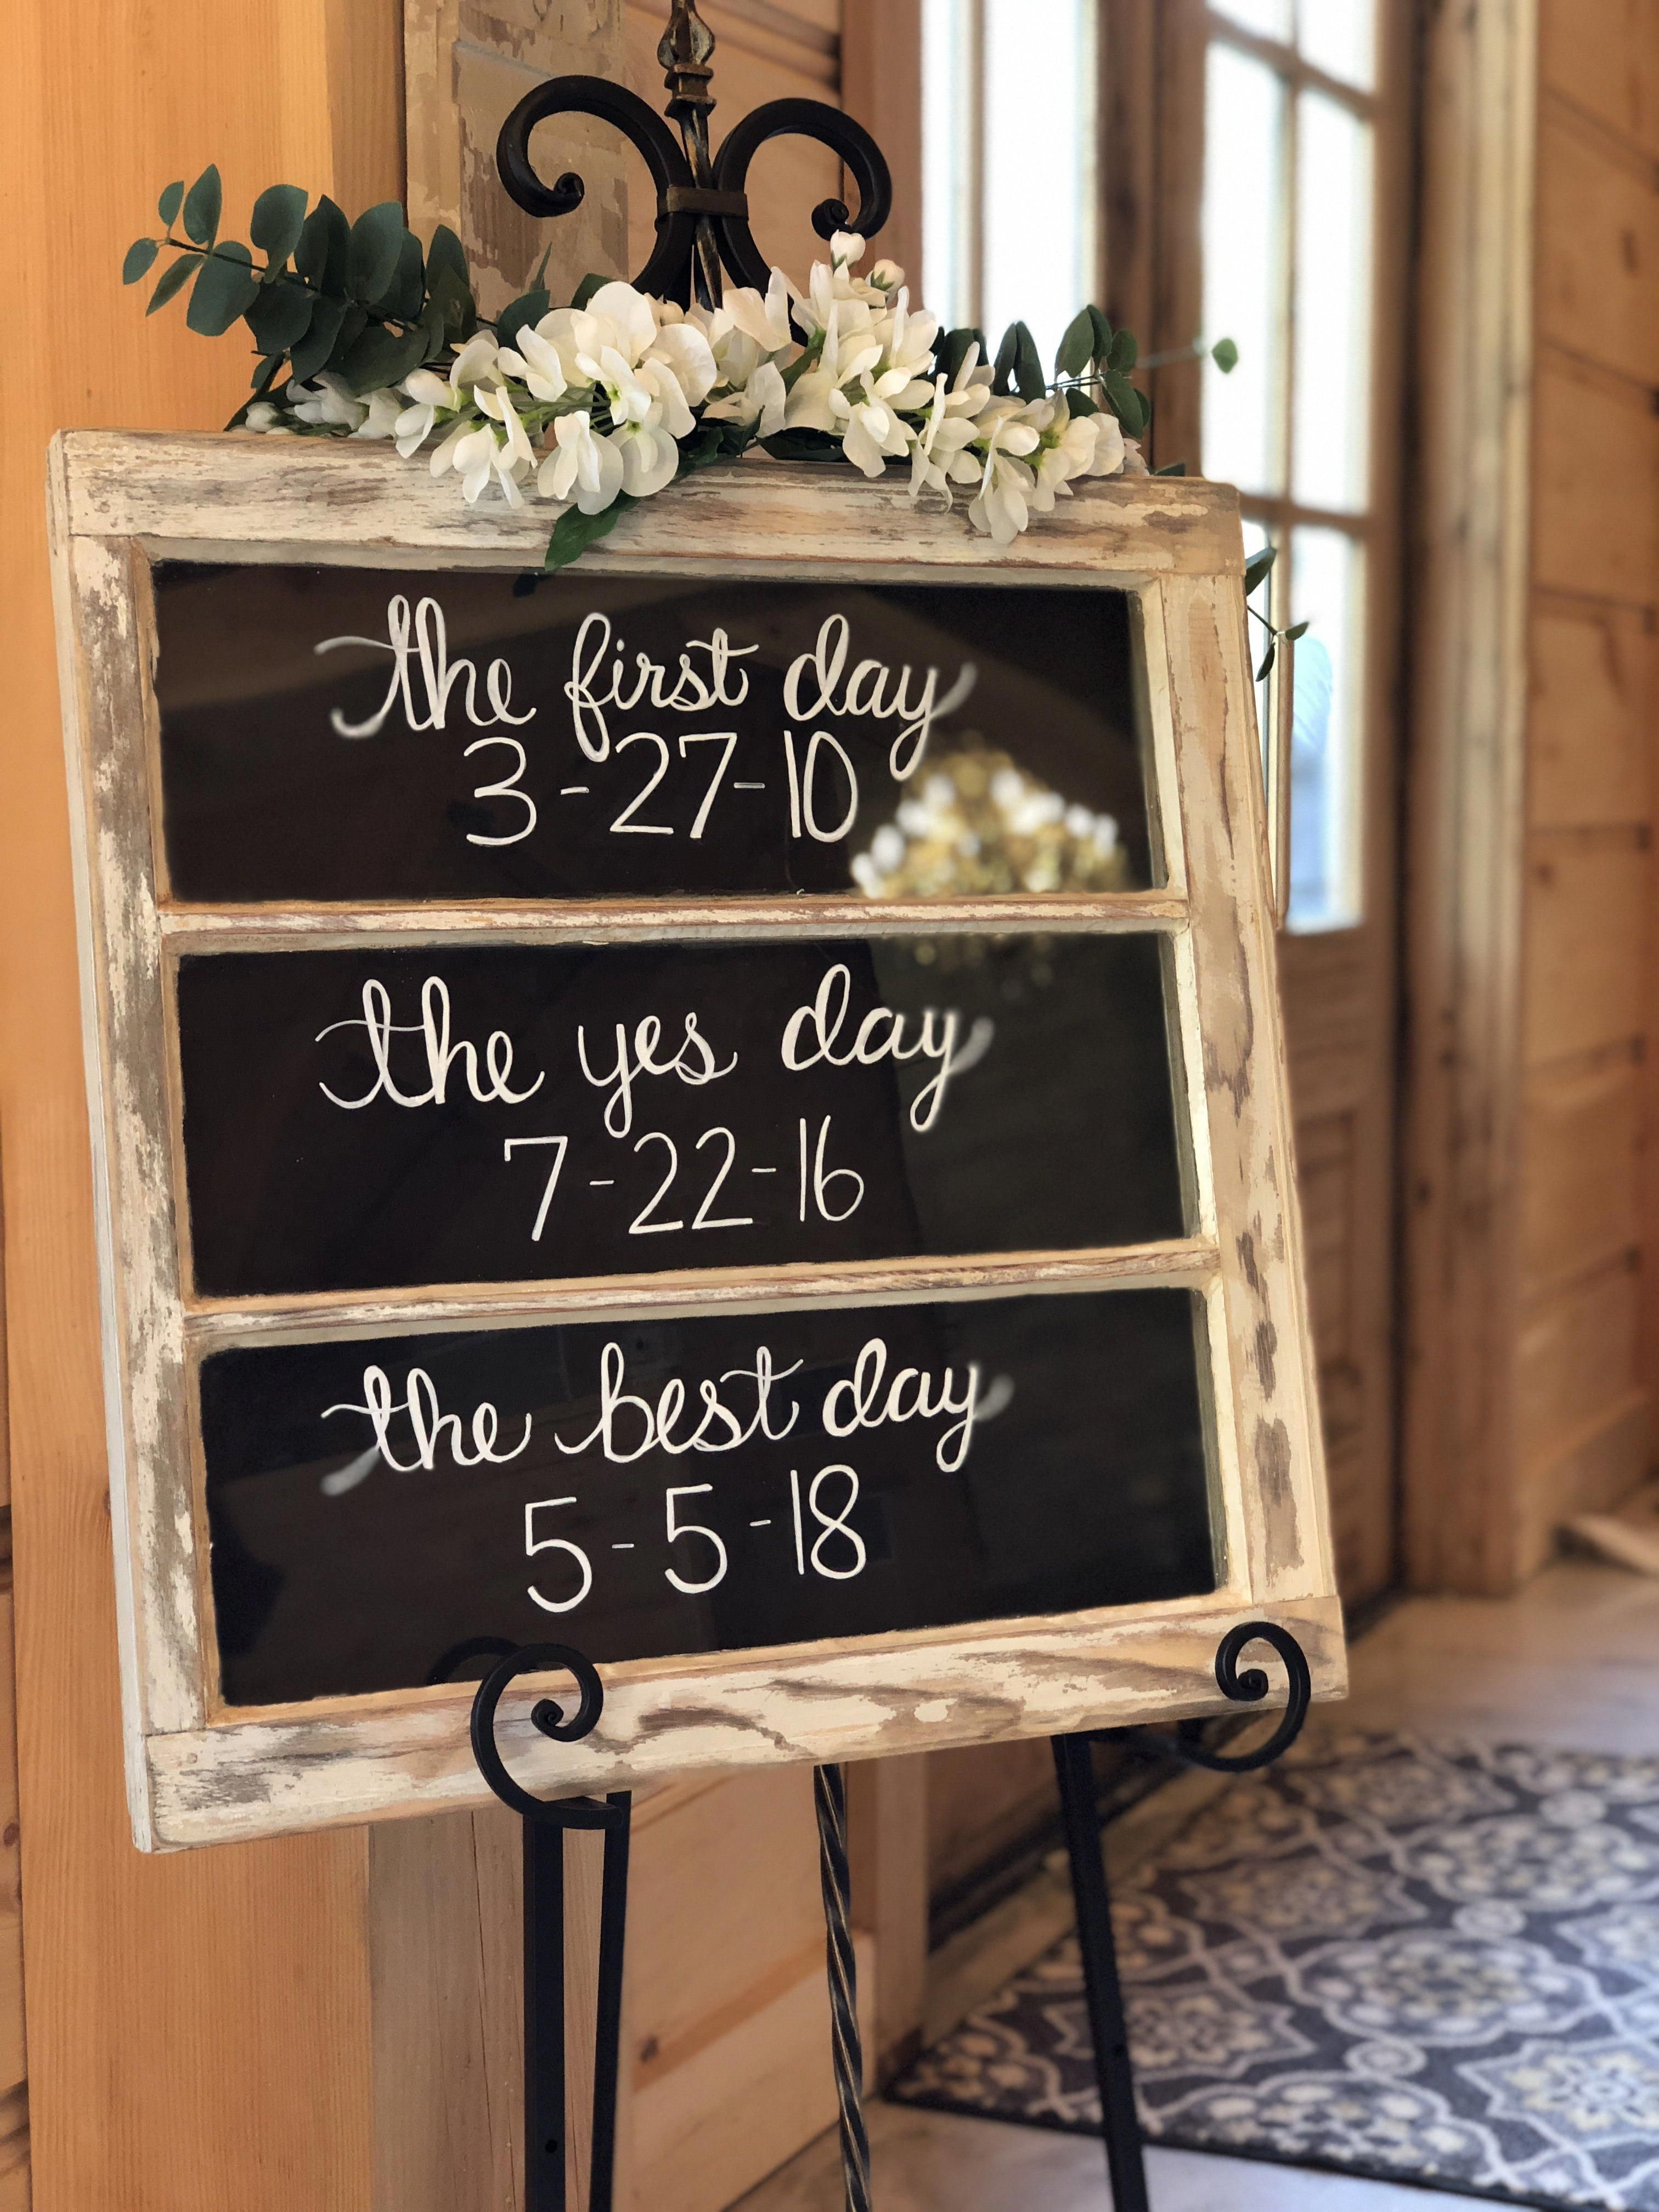 Are you planning to wed? look at these wedding ideas on a